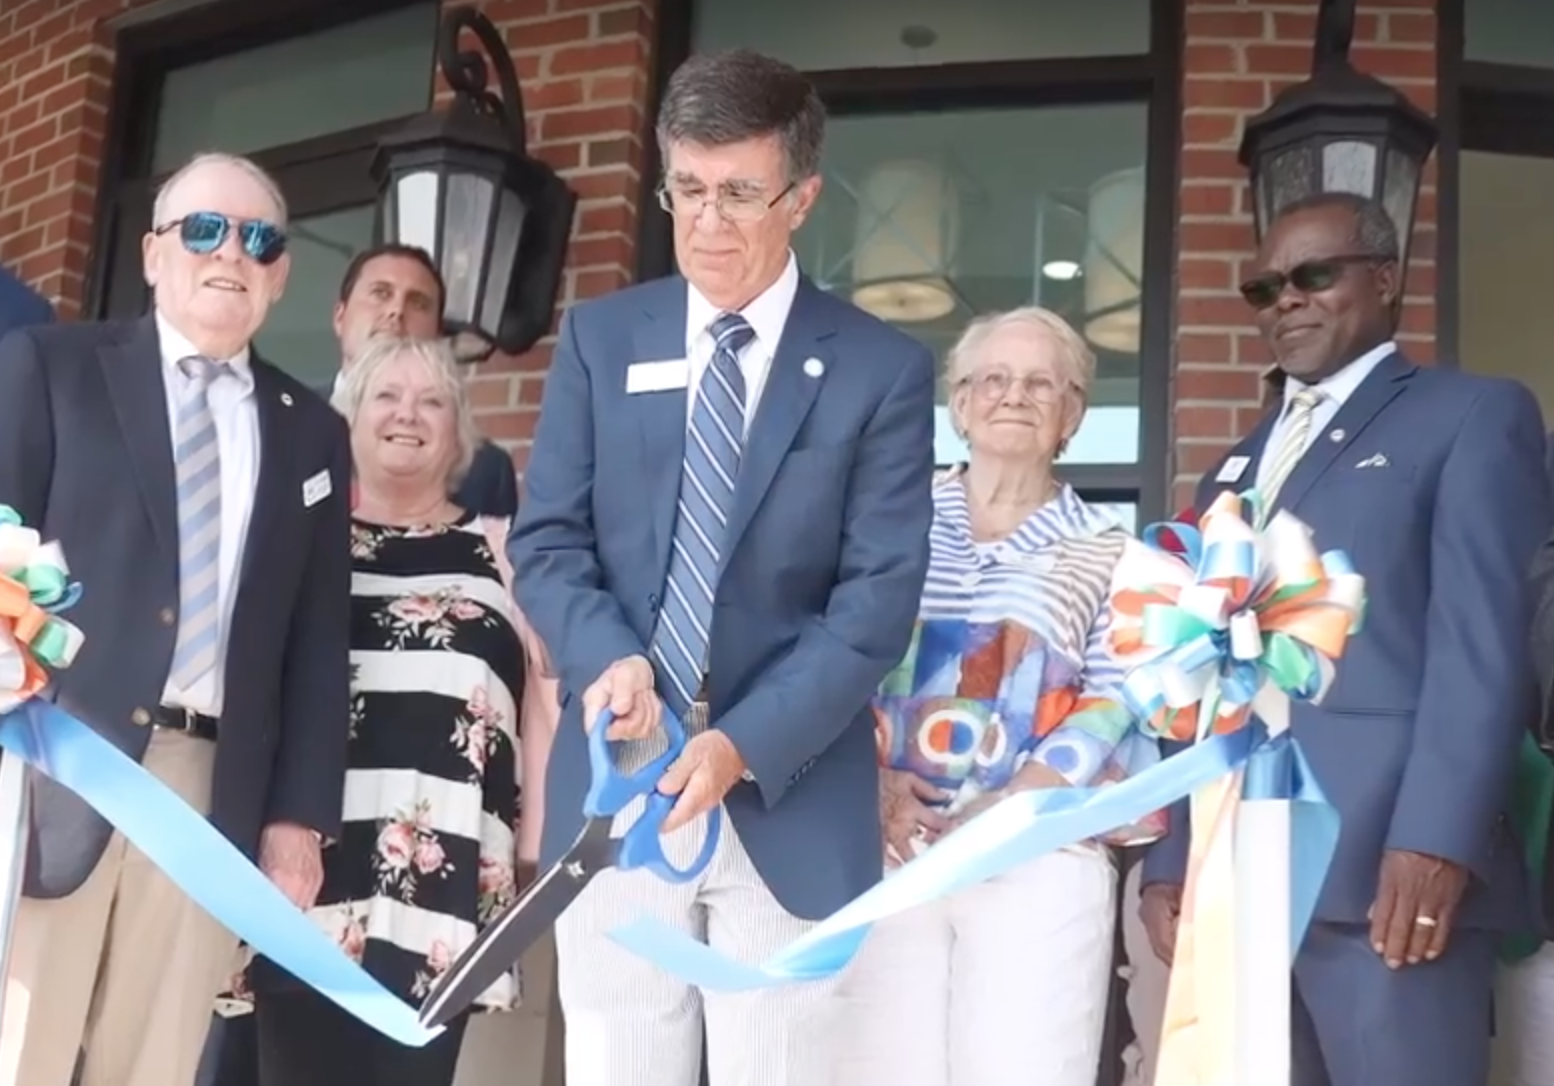 Surrounded by members of city council and other officials, Mayor Terry Mann cuts the ribbon at the new Whiteville City Hall Wednesday afternoon. (Photo by Grant Merritt)